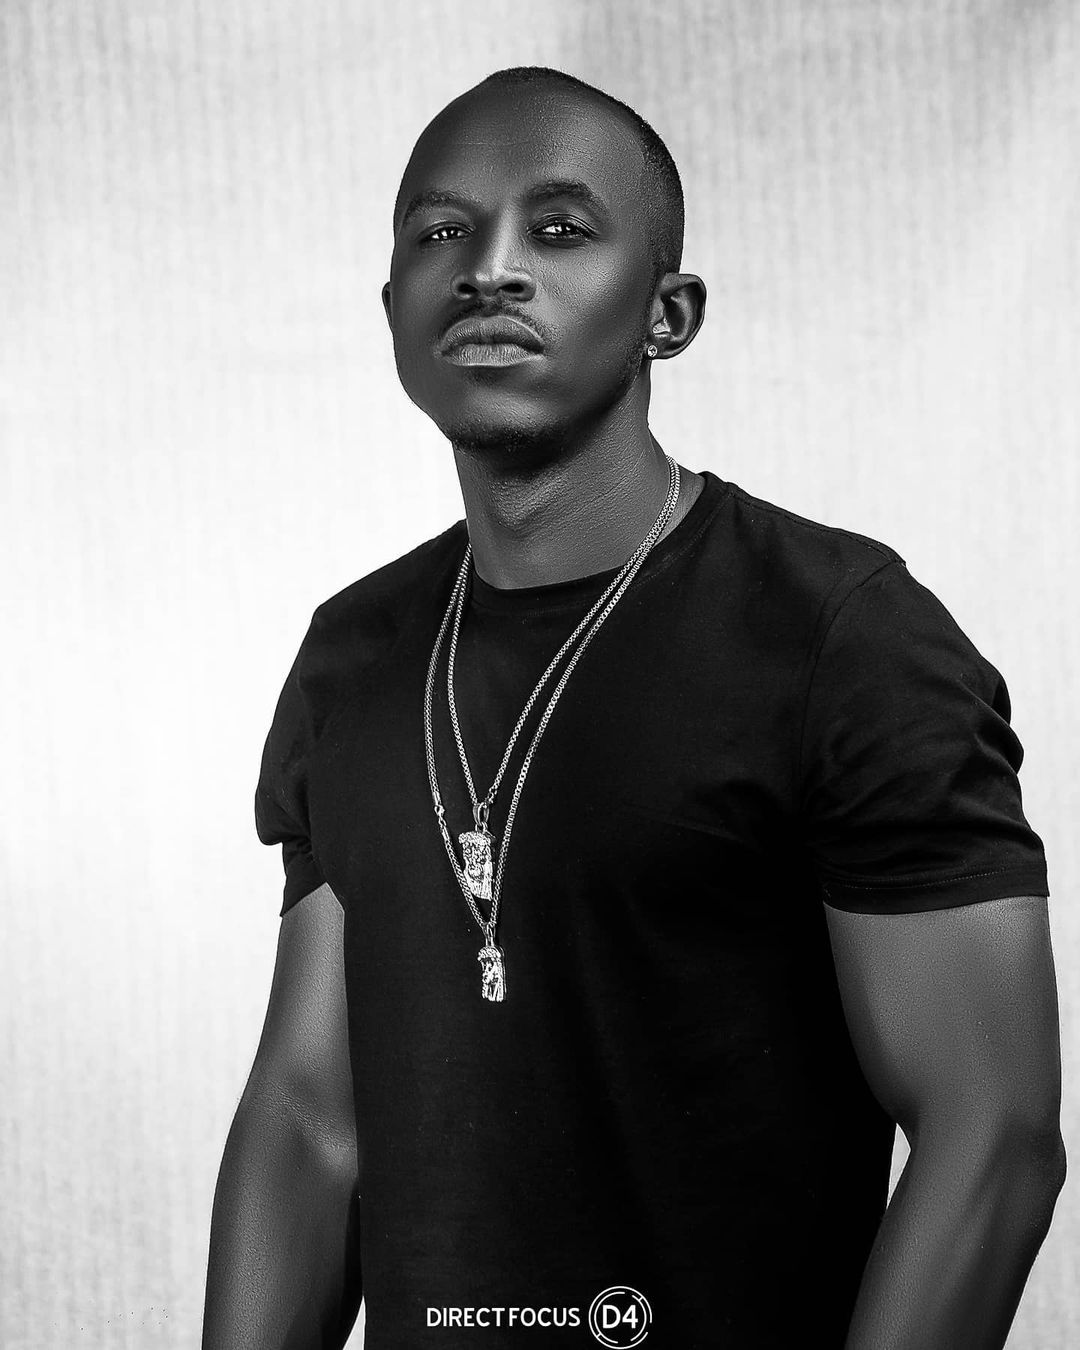 Macky2 To Take Action On Sites Publishing His New Single Take It Easy